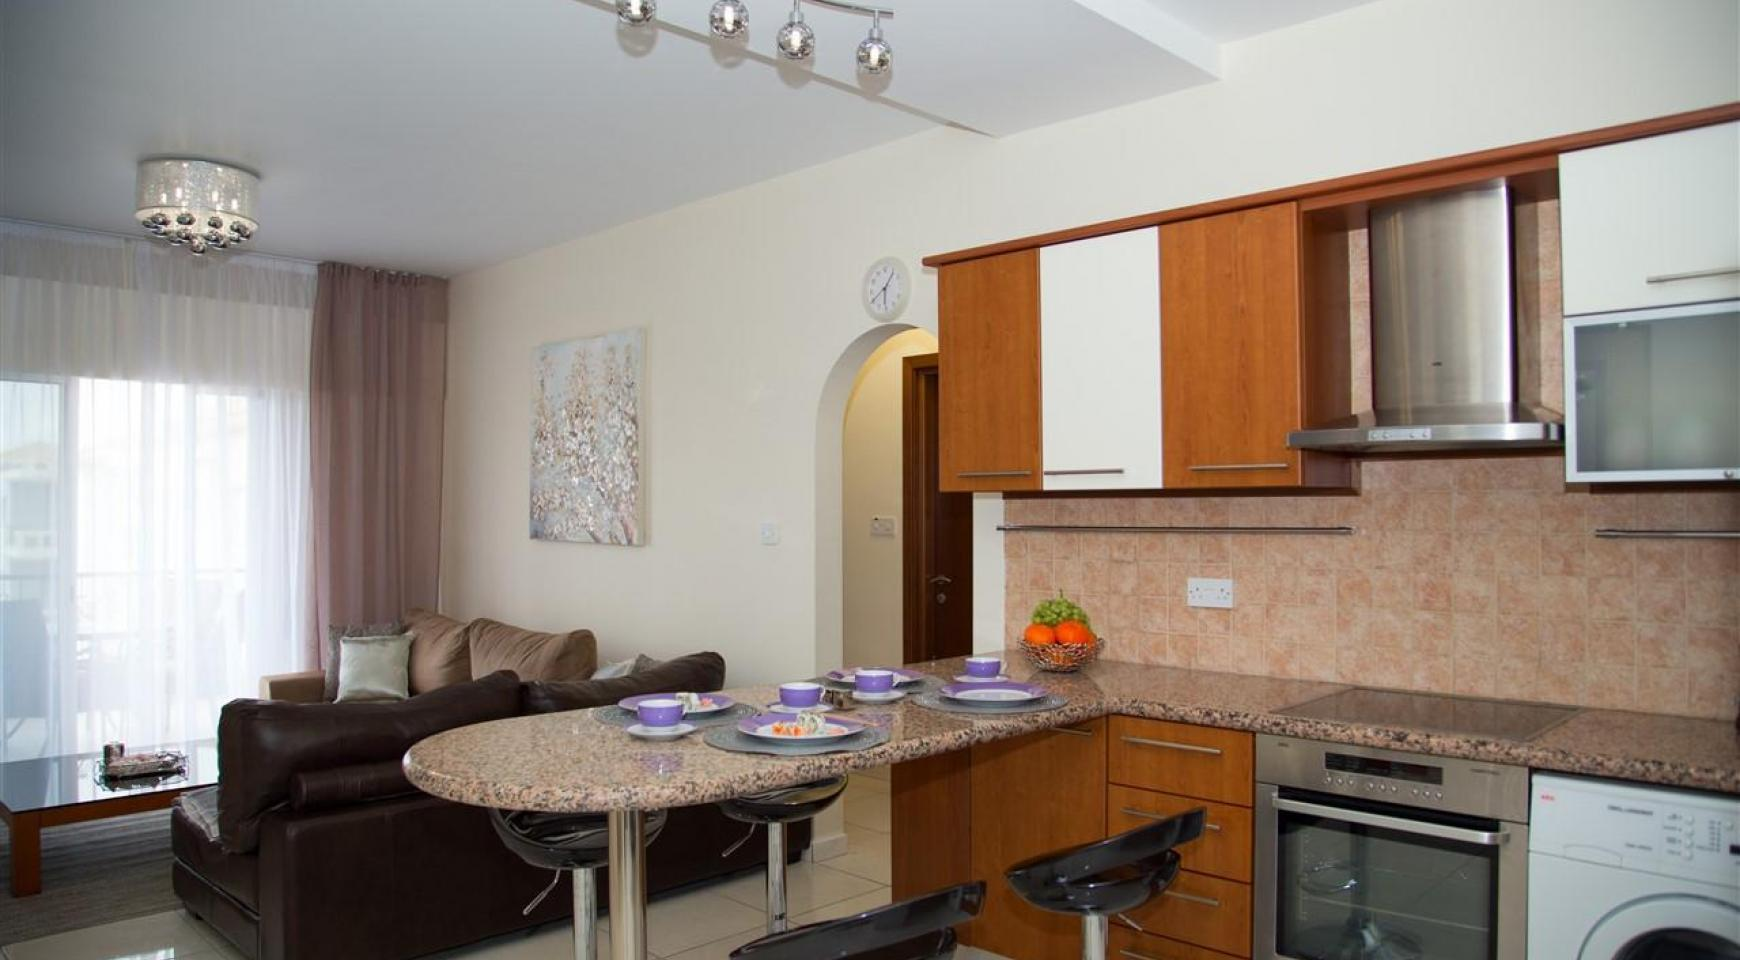 2 Bedroom Apartment Mesogios Iris 304 in the Complex near the Sea - 8